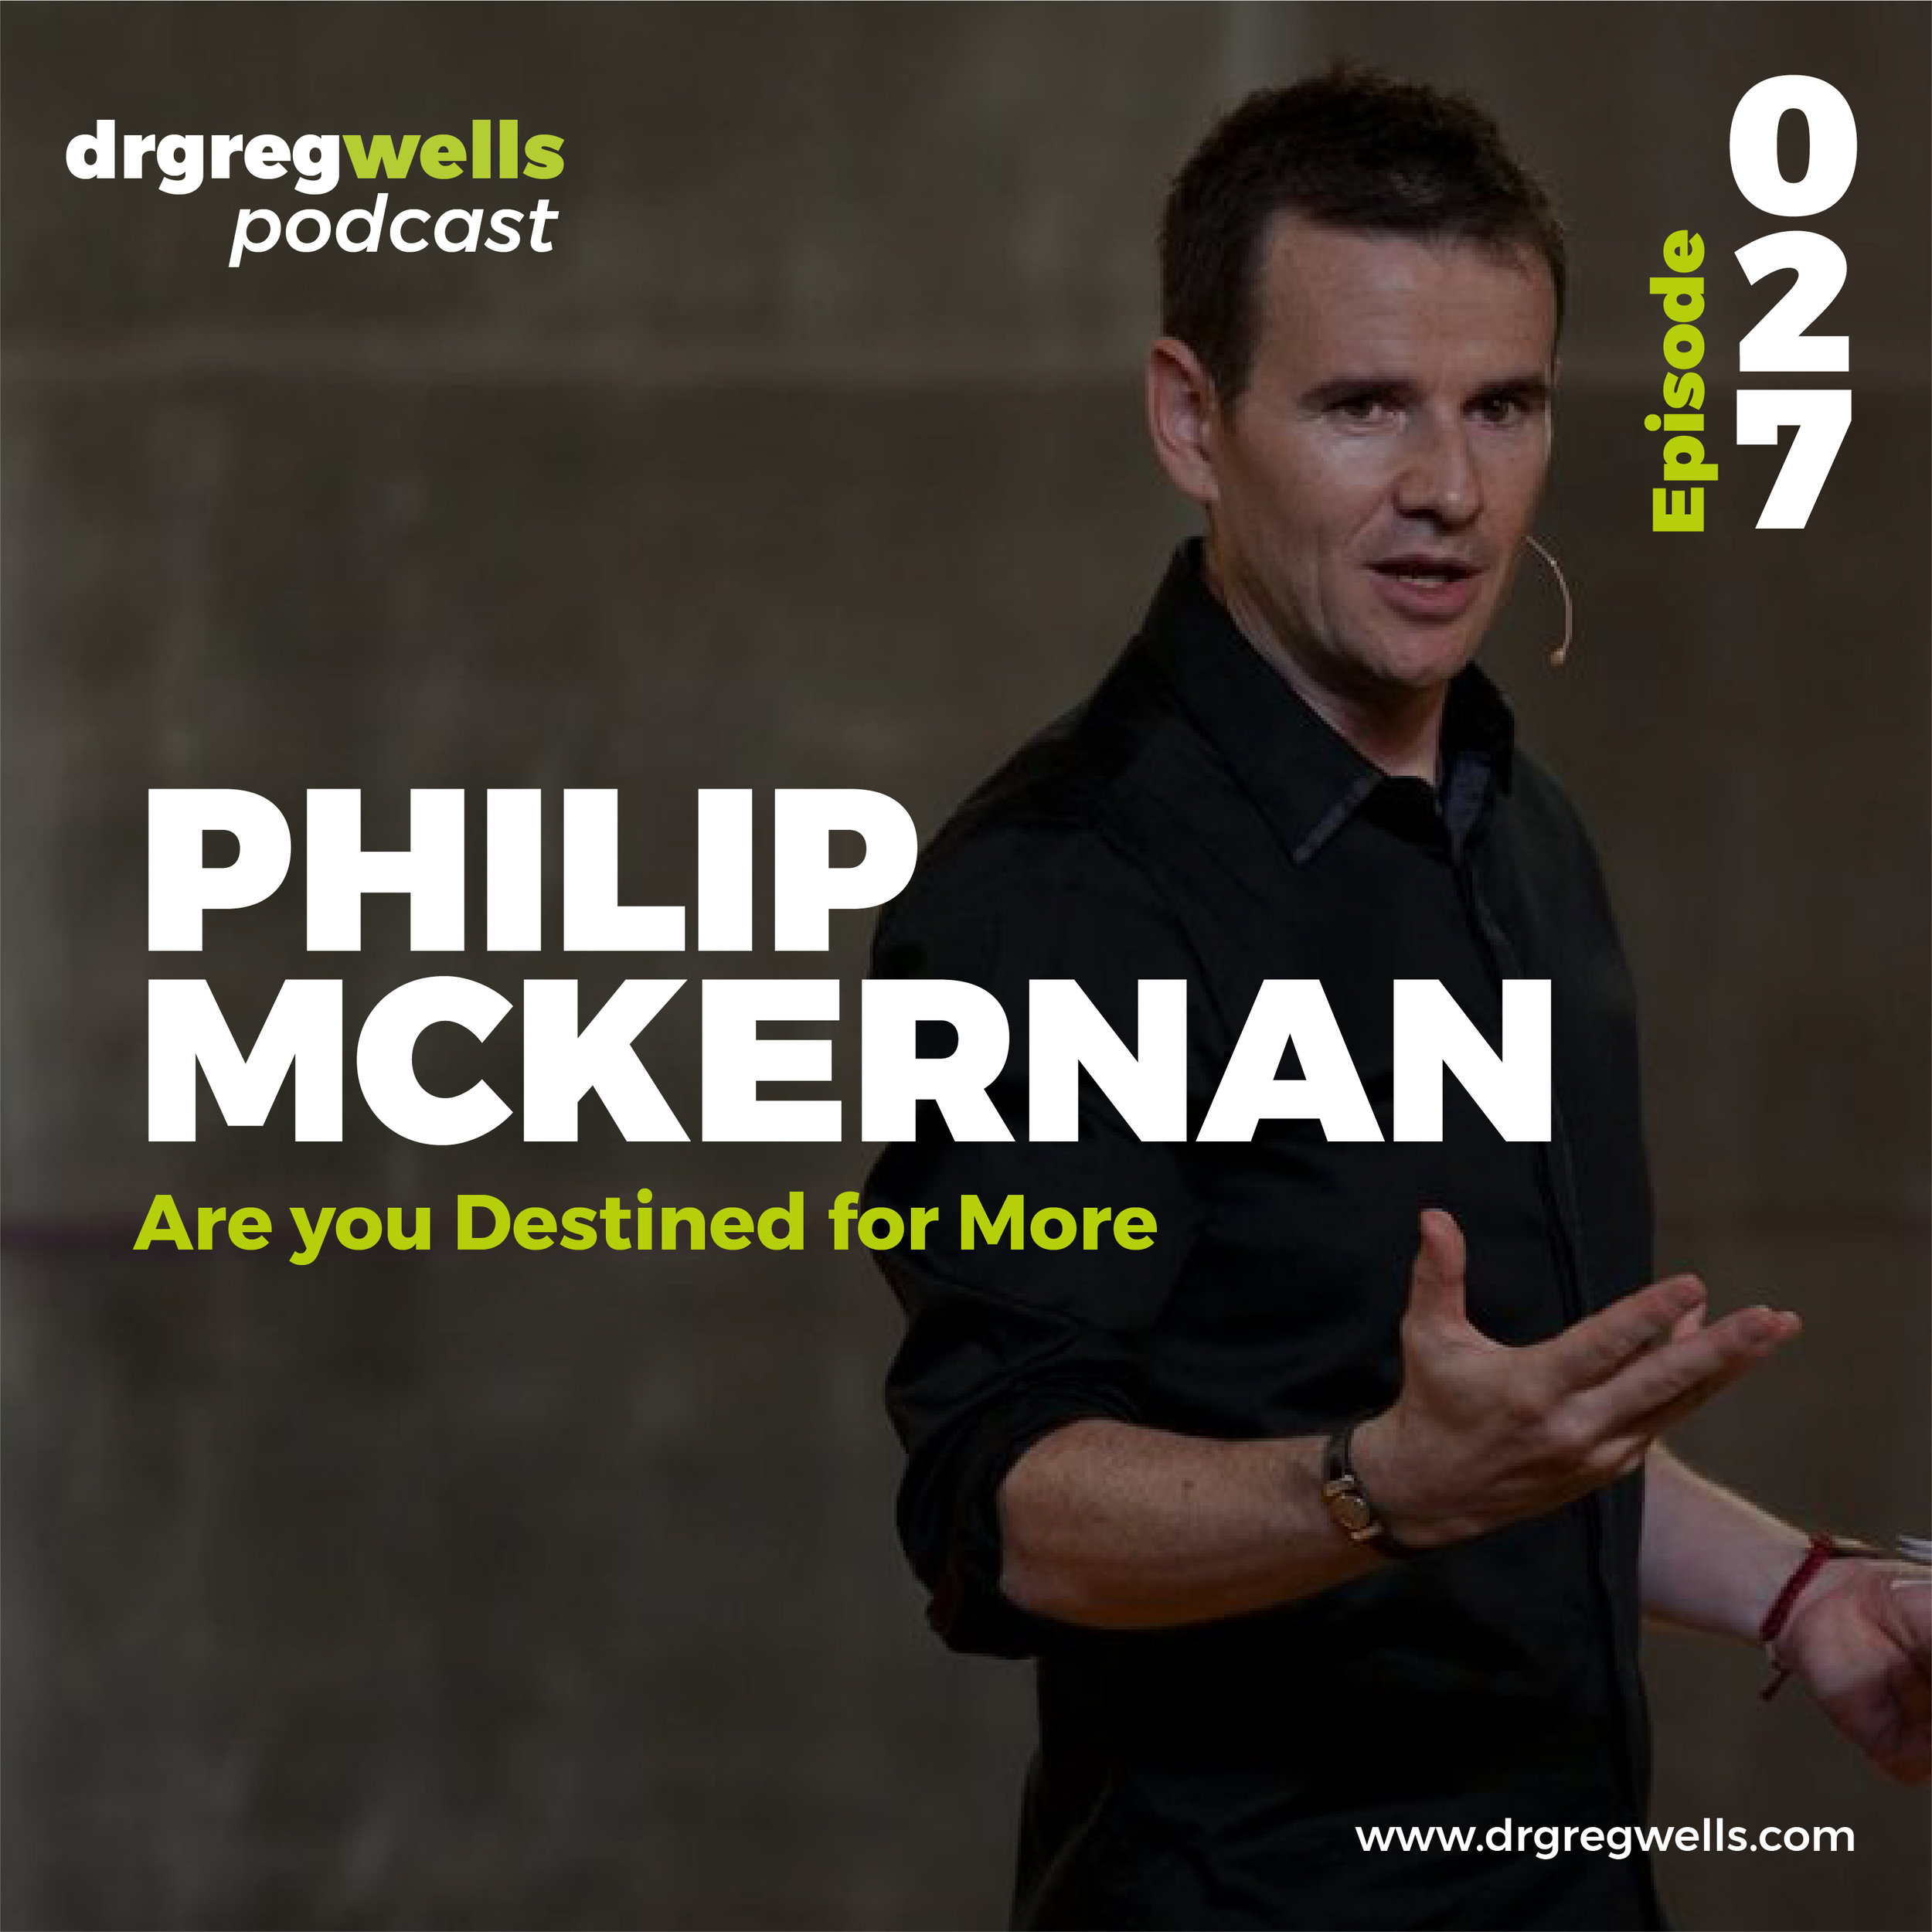 Dr Greg Wells Podcast Guest EP 1 - 32-27.jpg